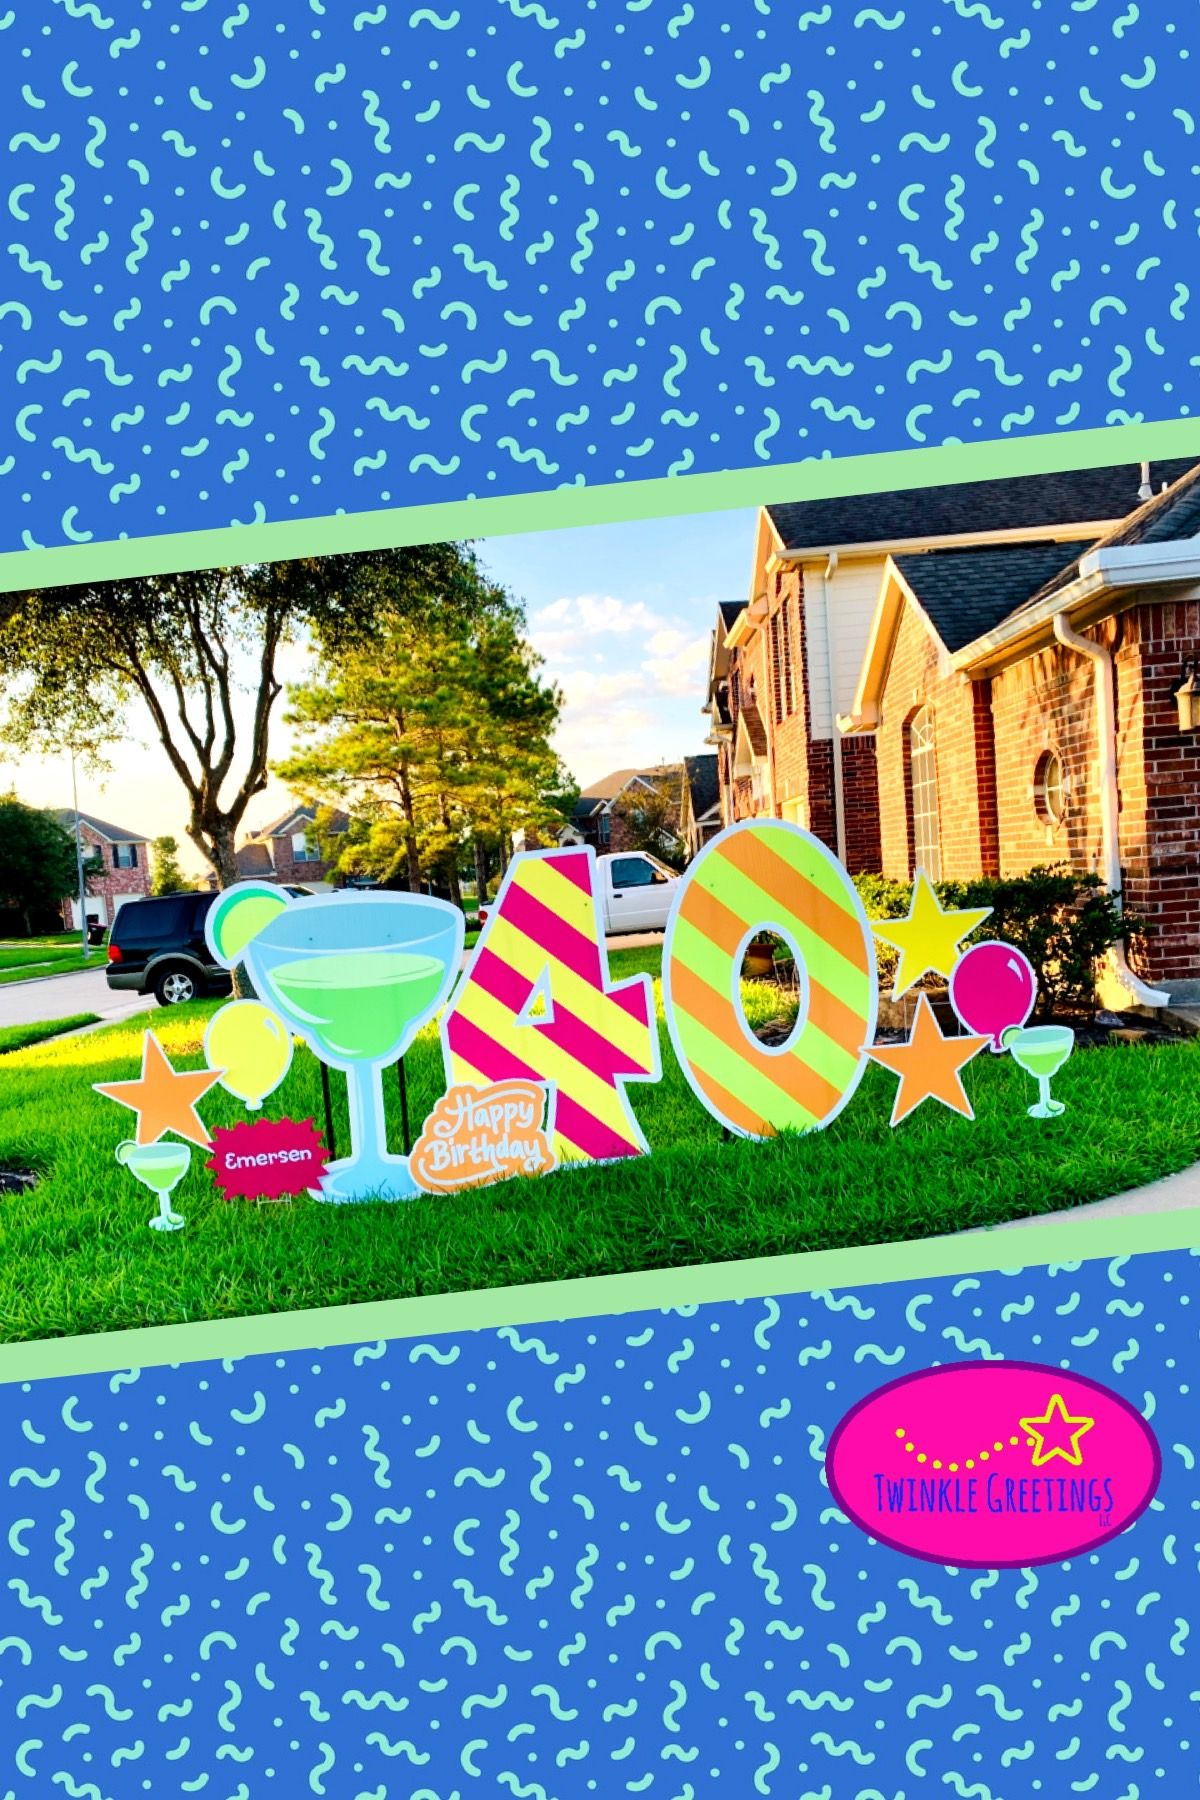 Rent a yard greeting for your next party! # ...